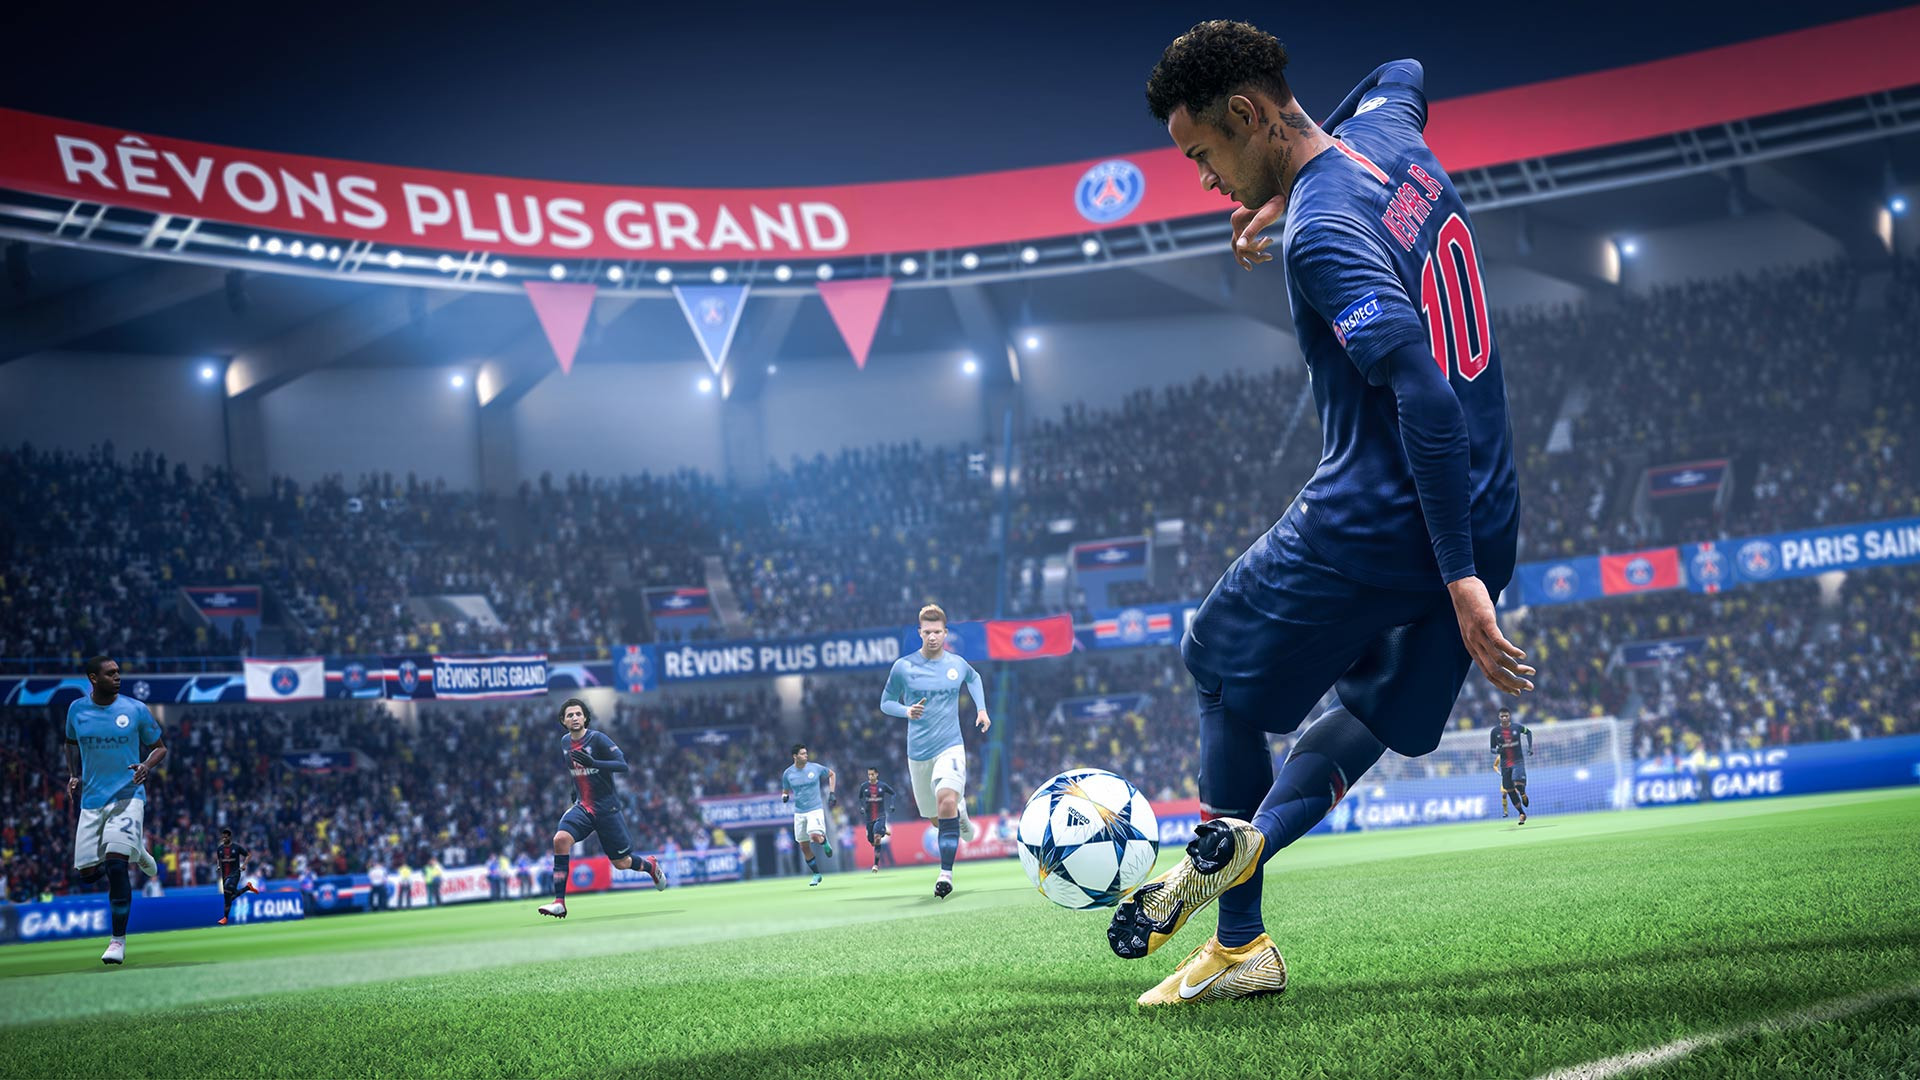 The Olympic Summit urged International Federations, such as FIFA, to make sure they retained control of electronic versions of their sport, like FIFA 19, one of the world's most popular egames ©EA